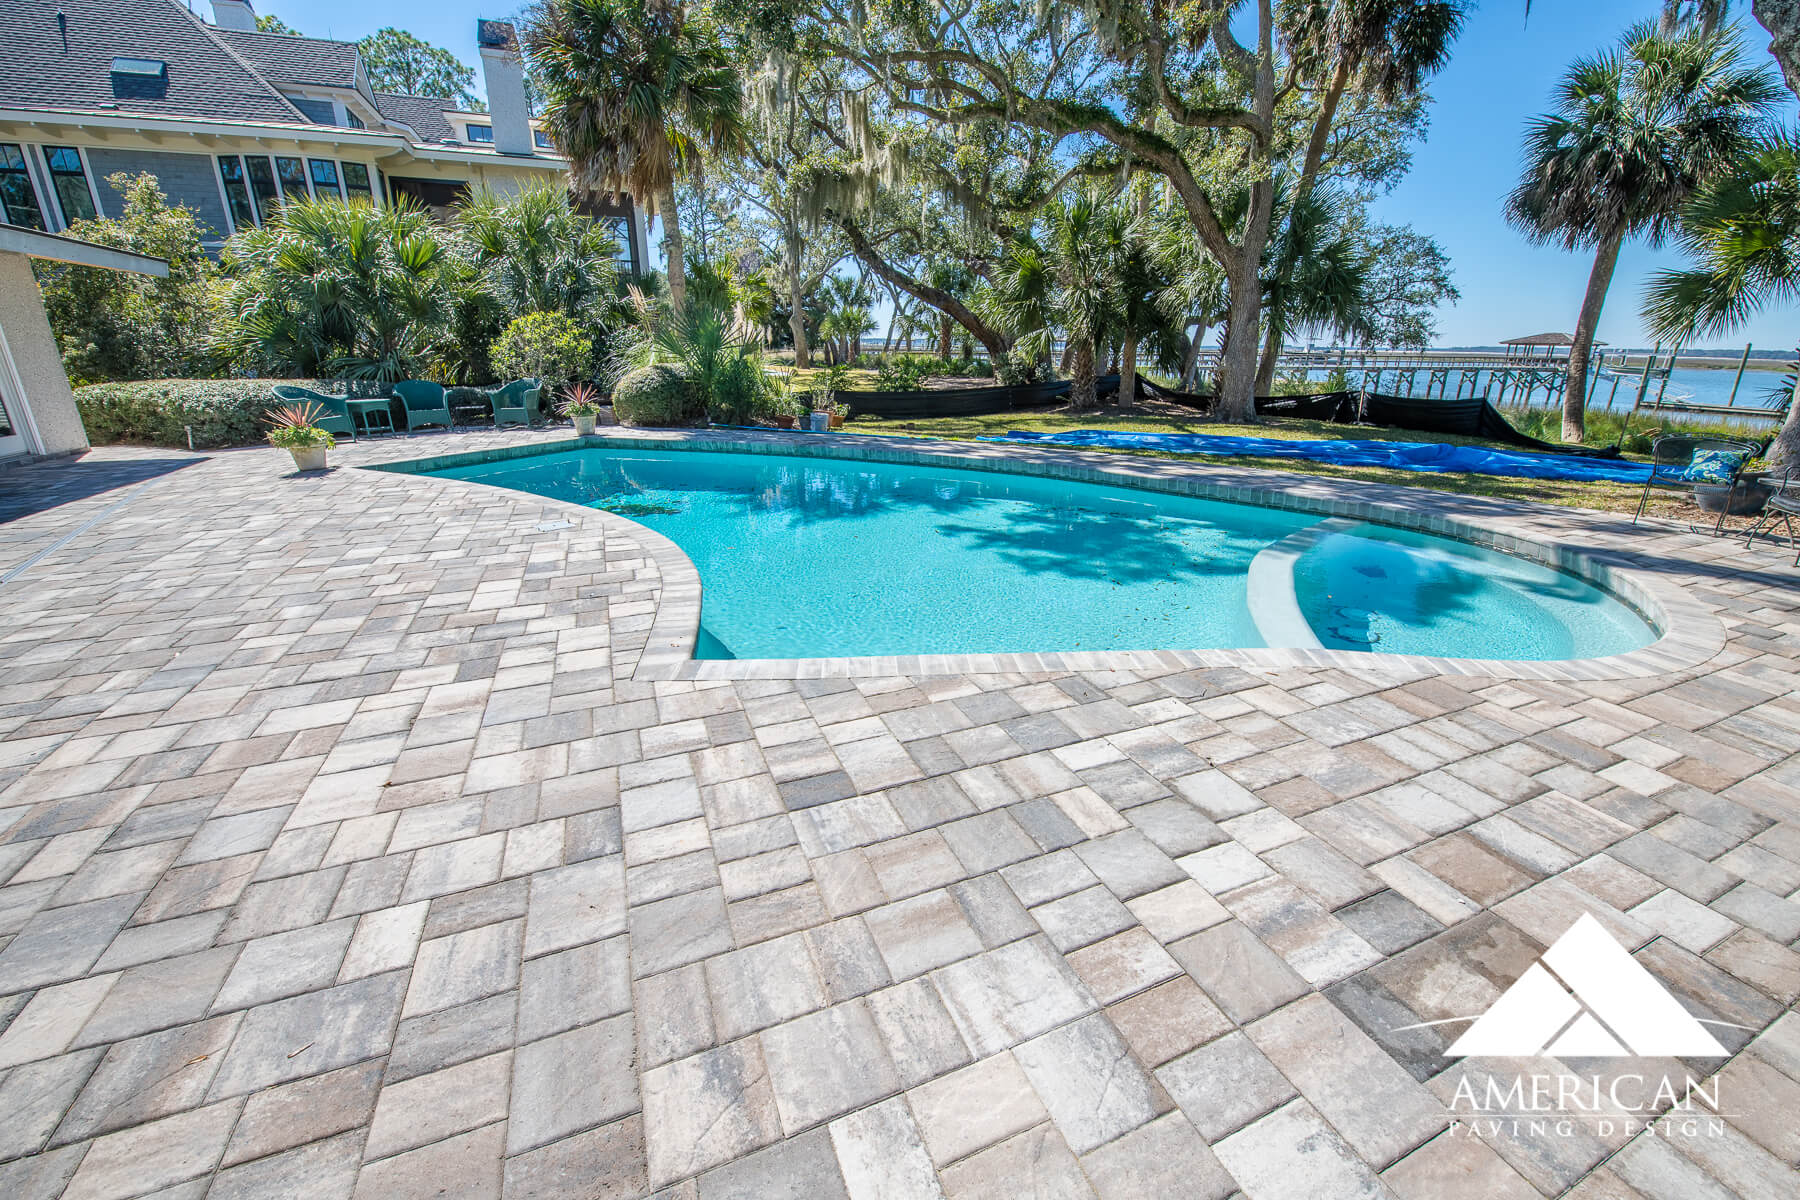 Textured Paver Pool Deck